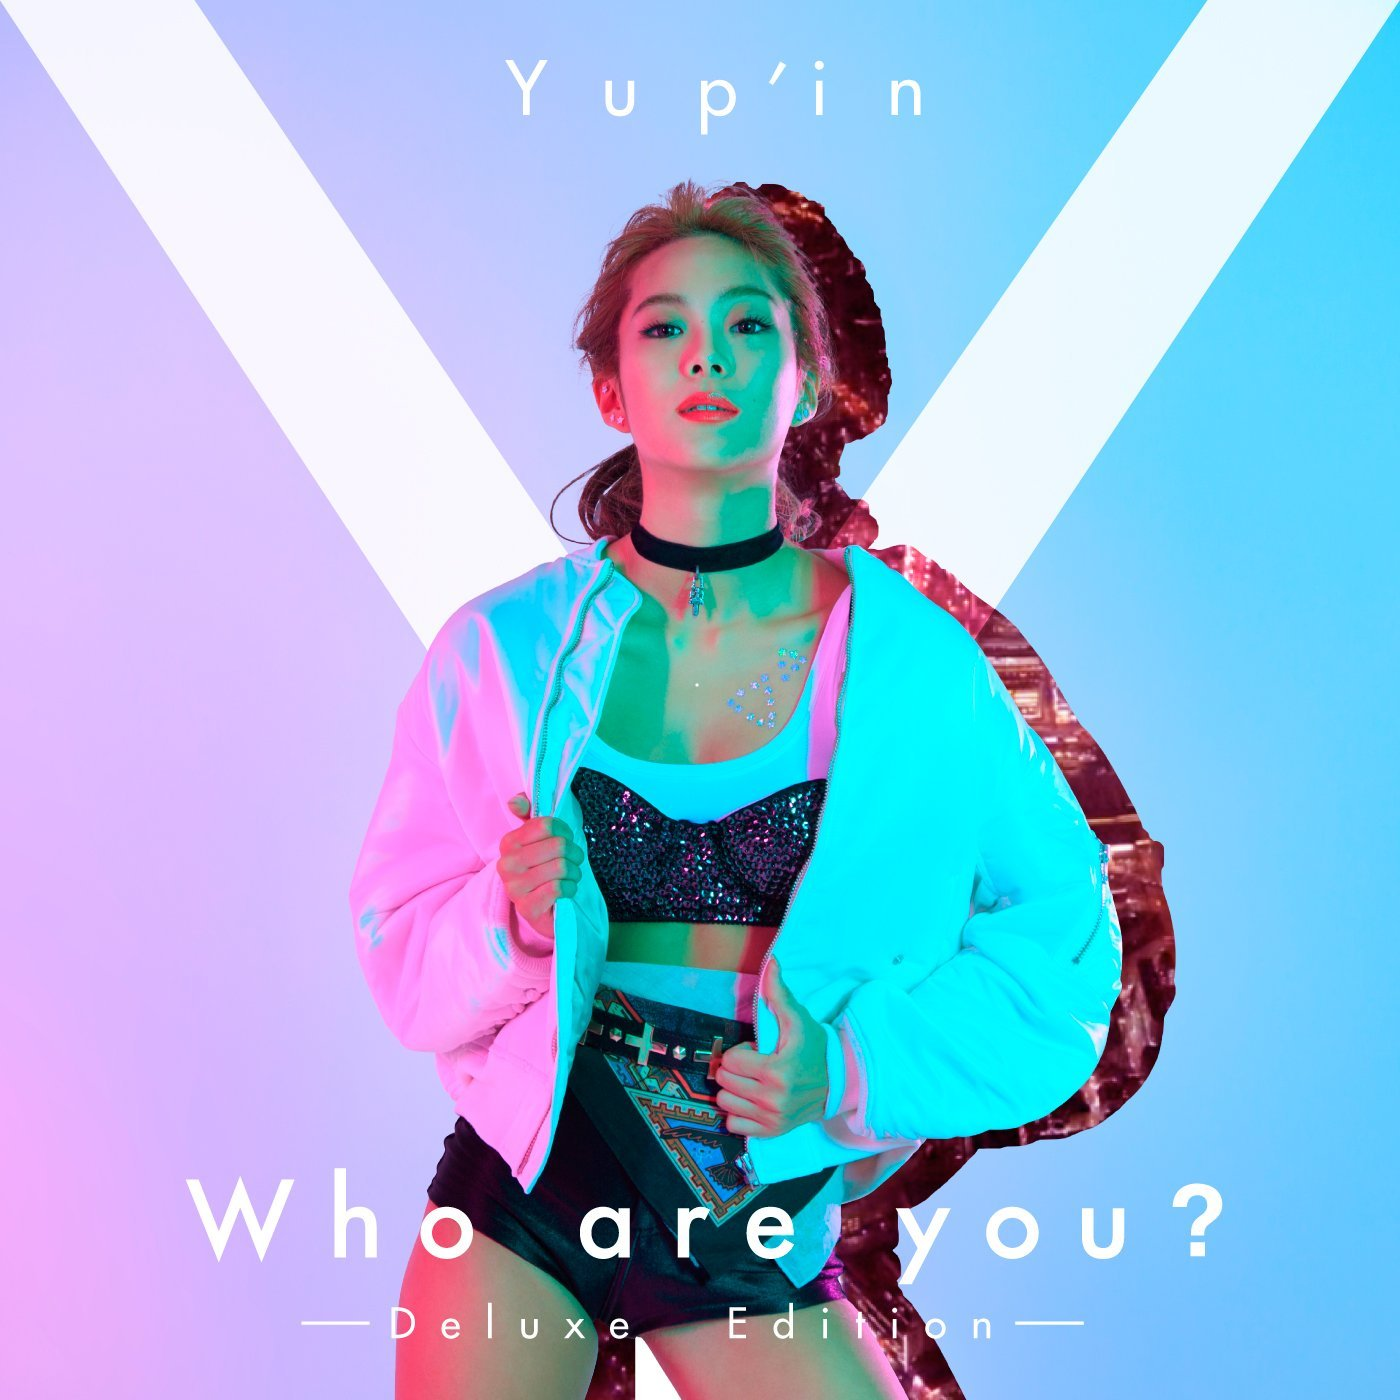 20151212.21.2 Yup'in - Who Are You (Deluxe edition) cover.jpg